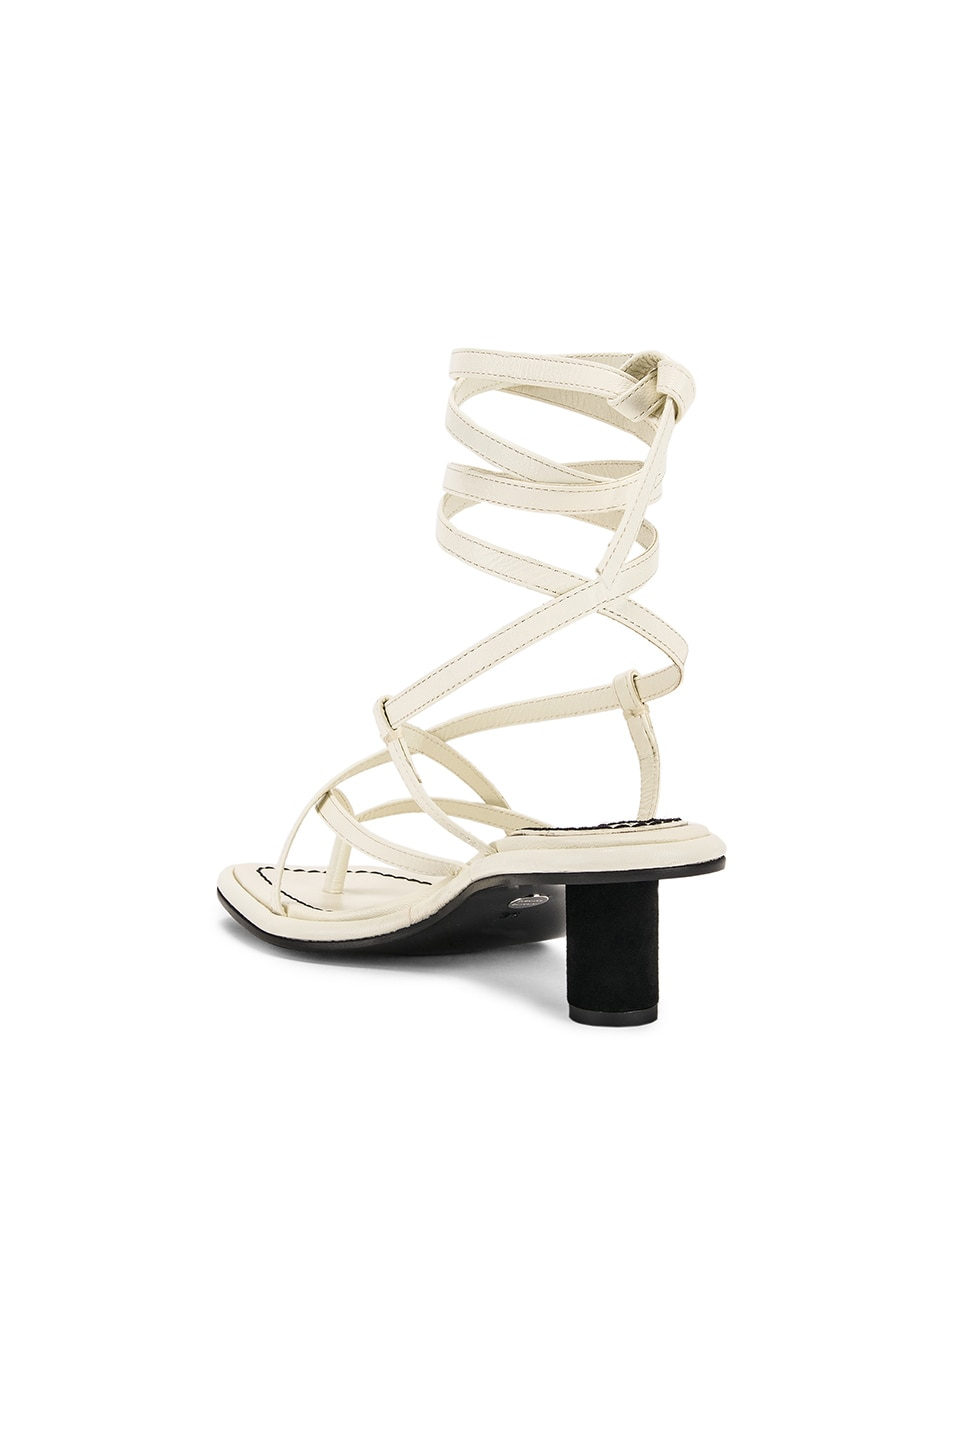 Image 3 of Proenza Schouler Gladiator Sandals in Ecru